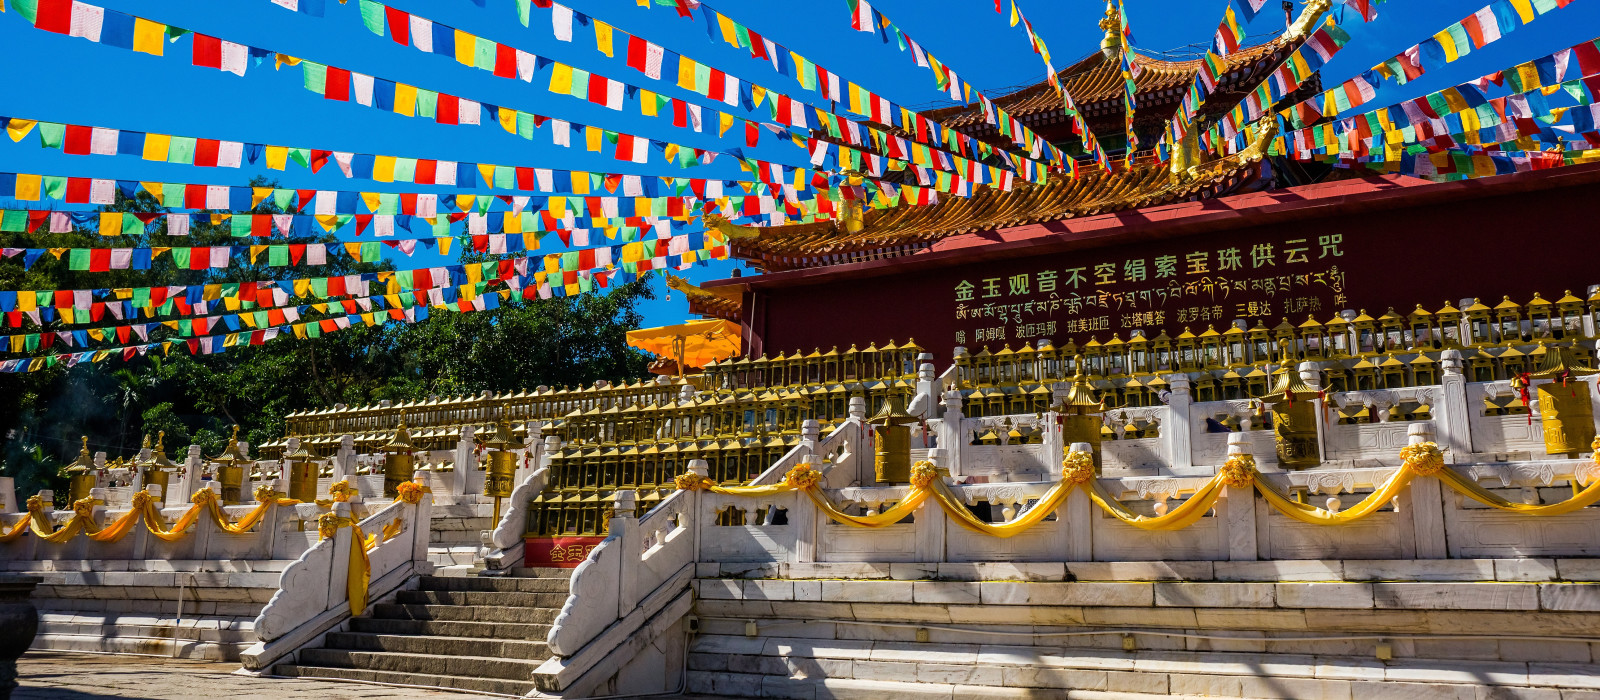 Enchanting Travels China Tours Chinese temple in China with colorful prayer flags - culture of China